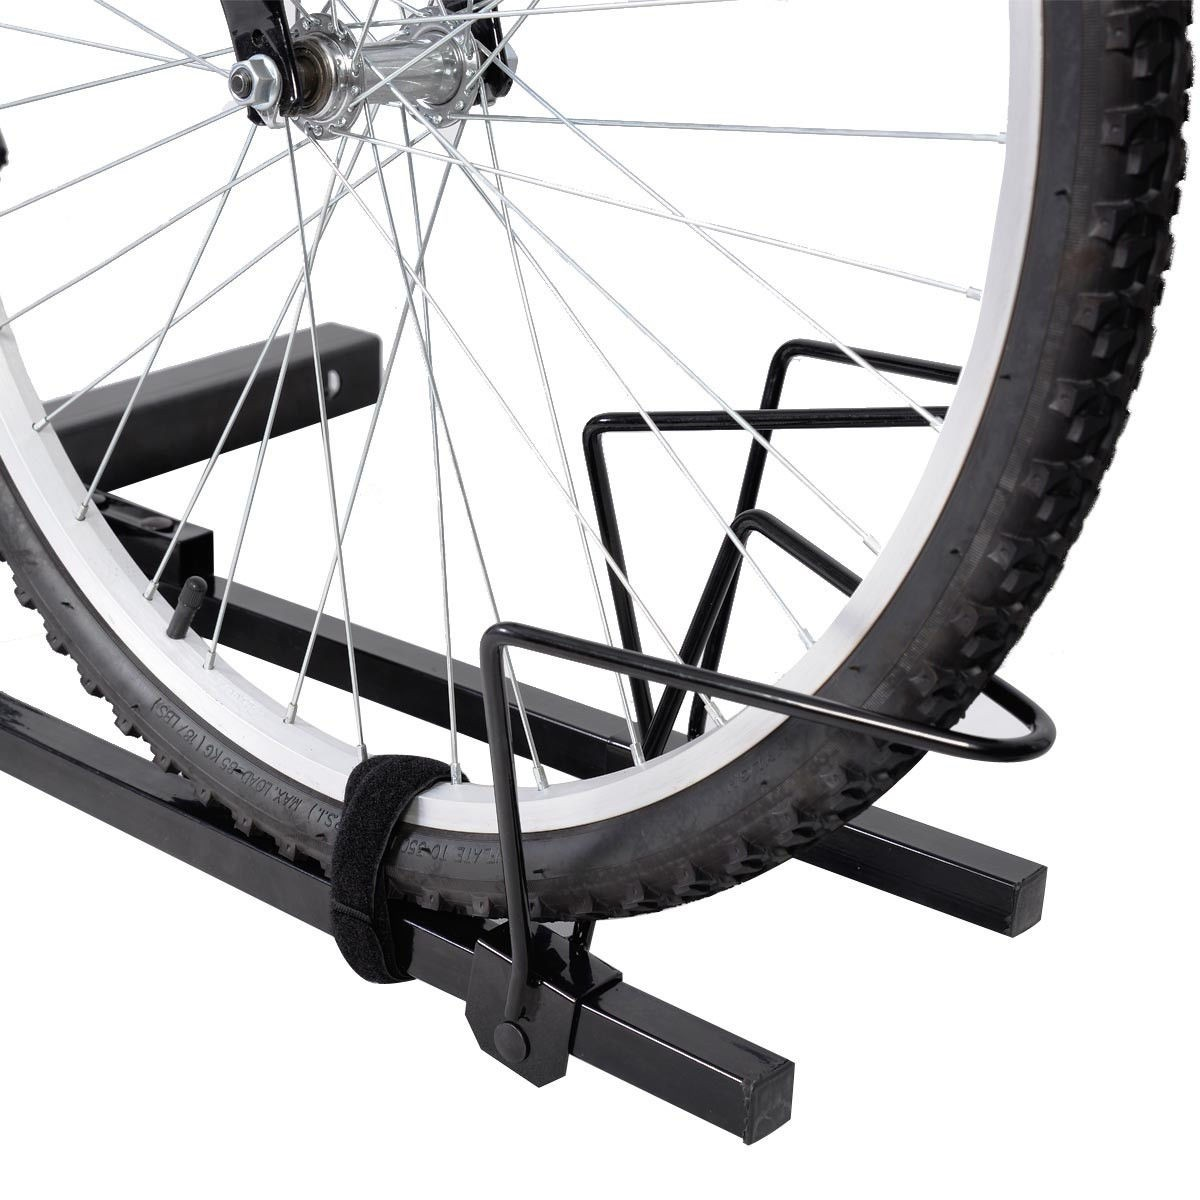 Details about 2 Bike Bicycle Carrier Hitch Receiver 2'' Heavy Duty Mount  Rack Truck SUV New